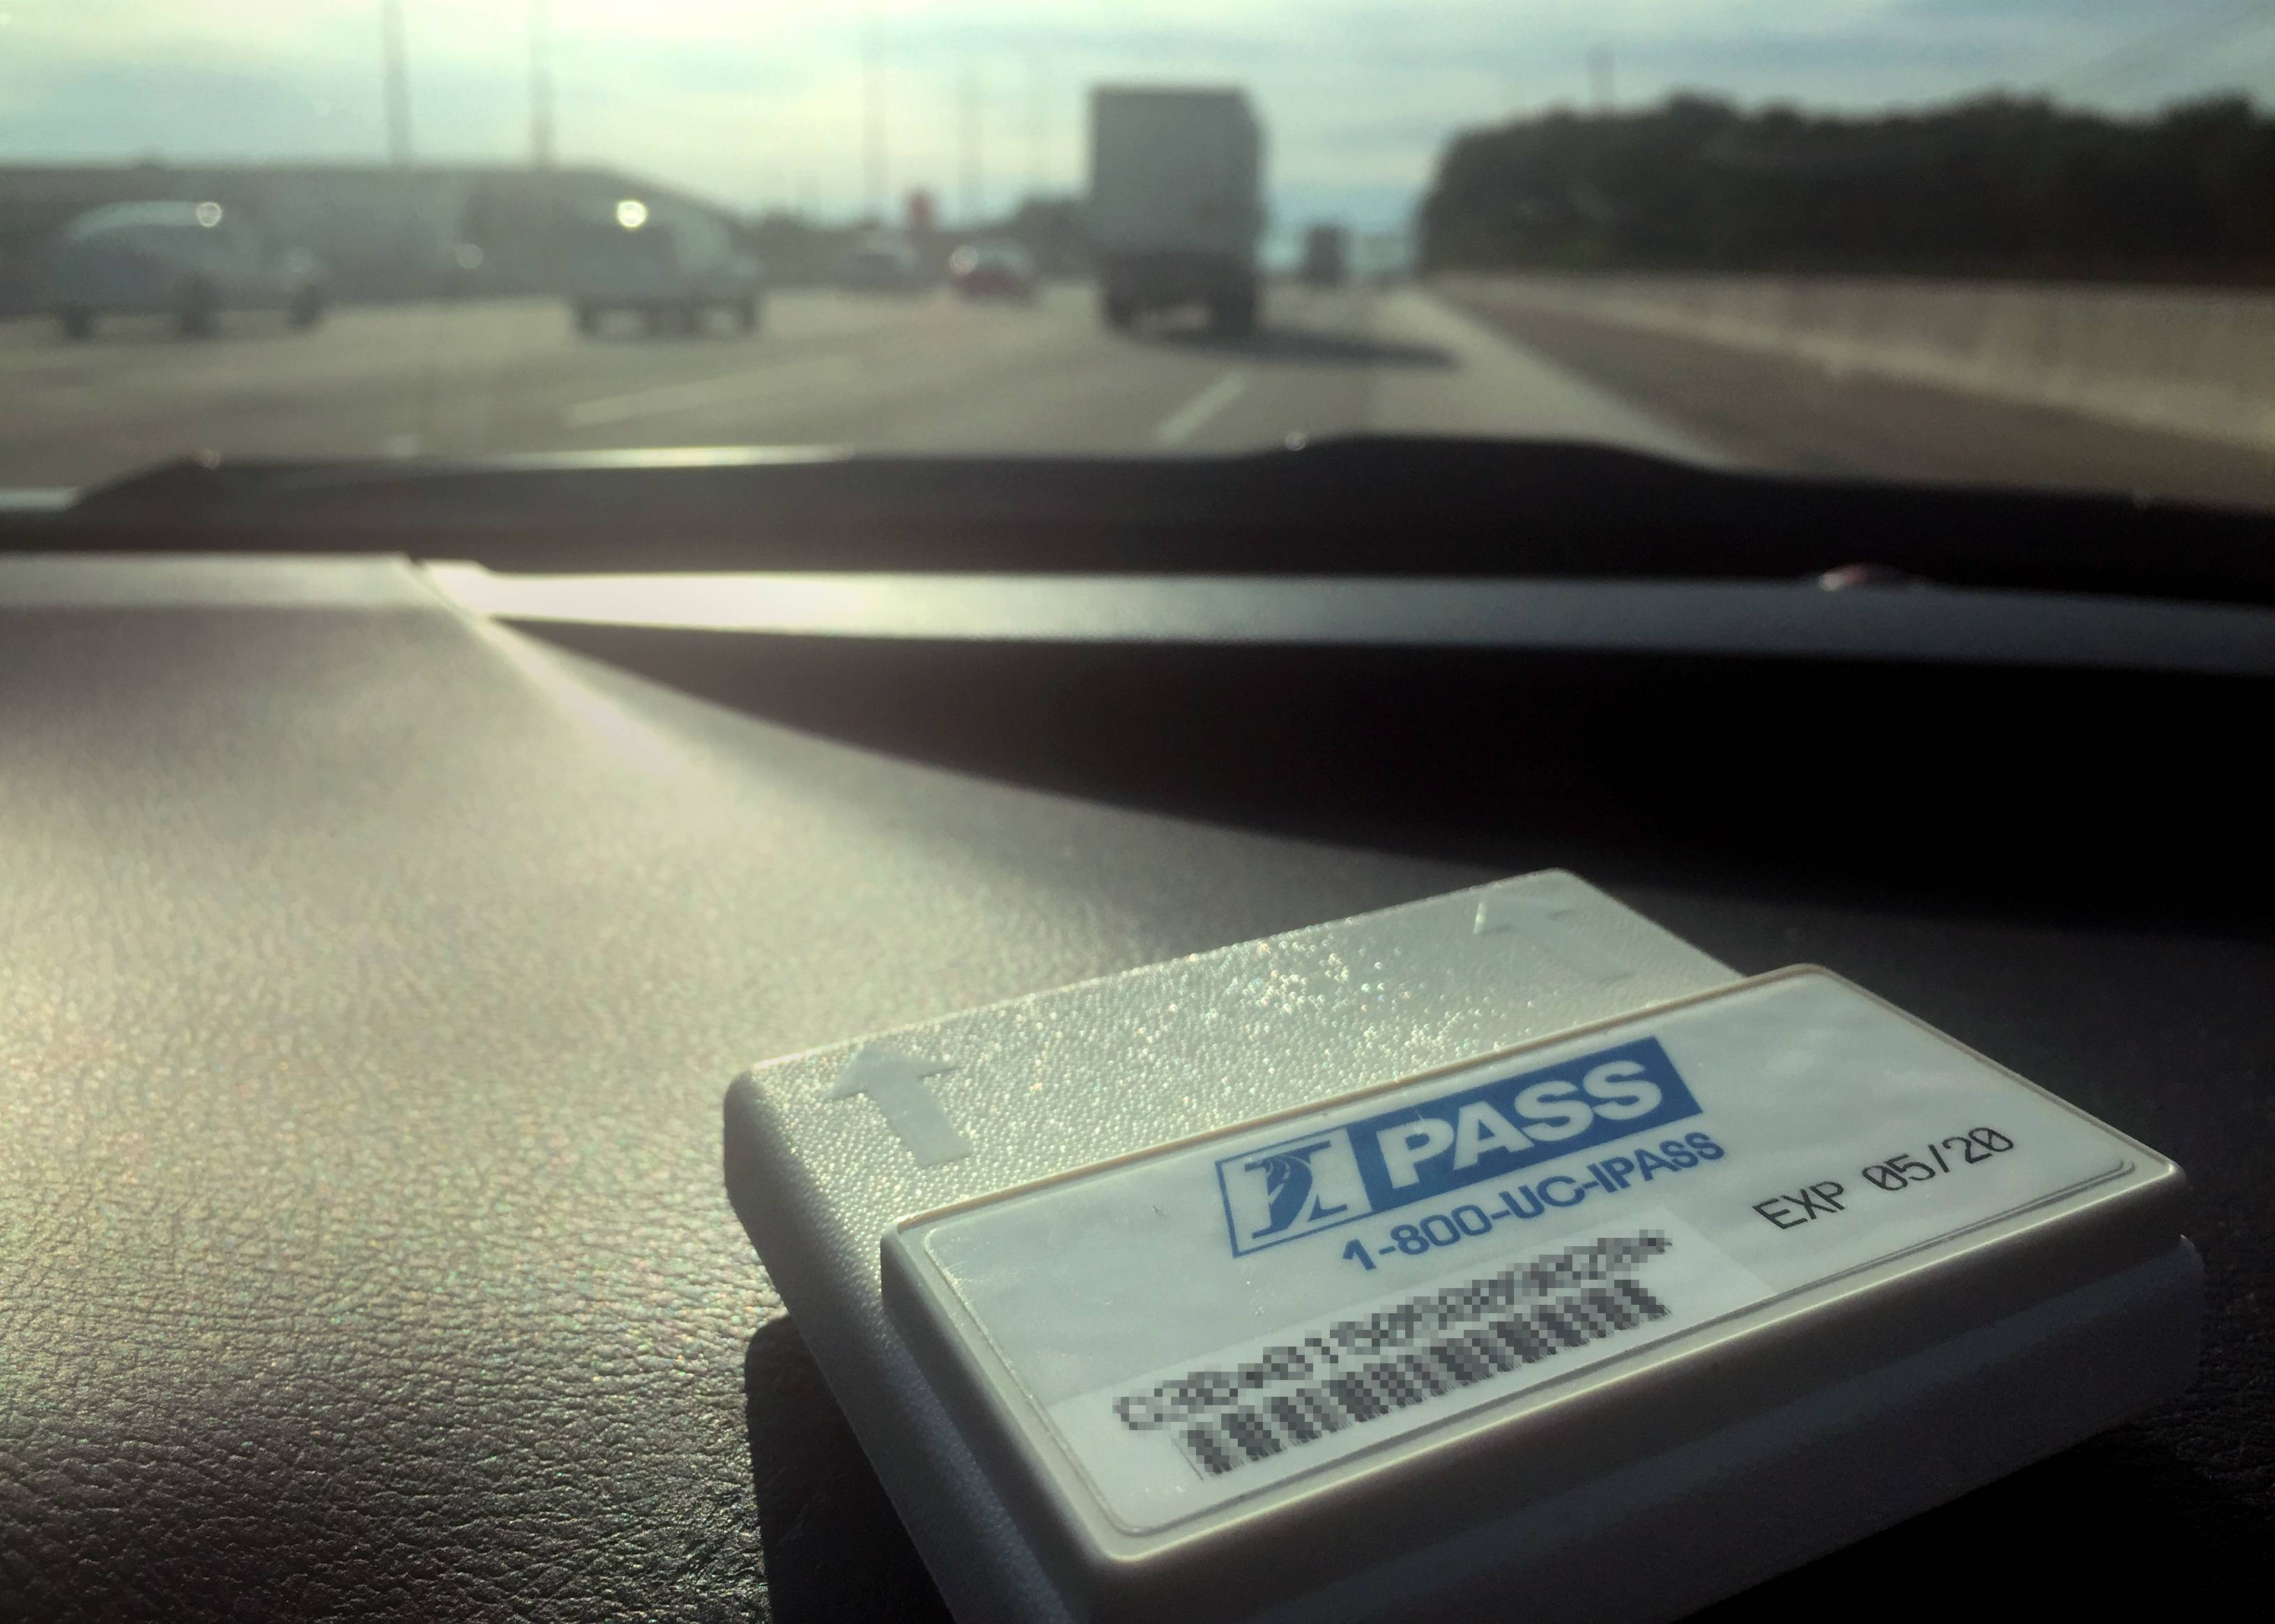 This little device — a tollway transponder — prompted our most-read story of the week.